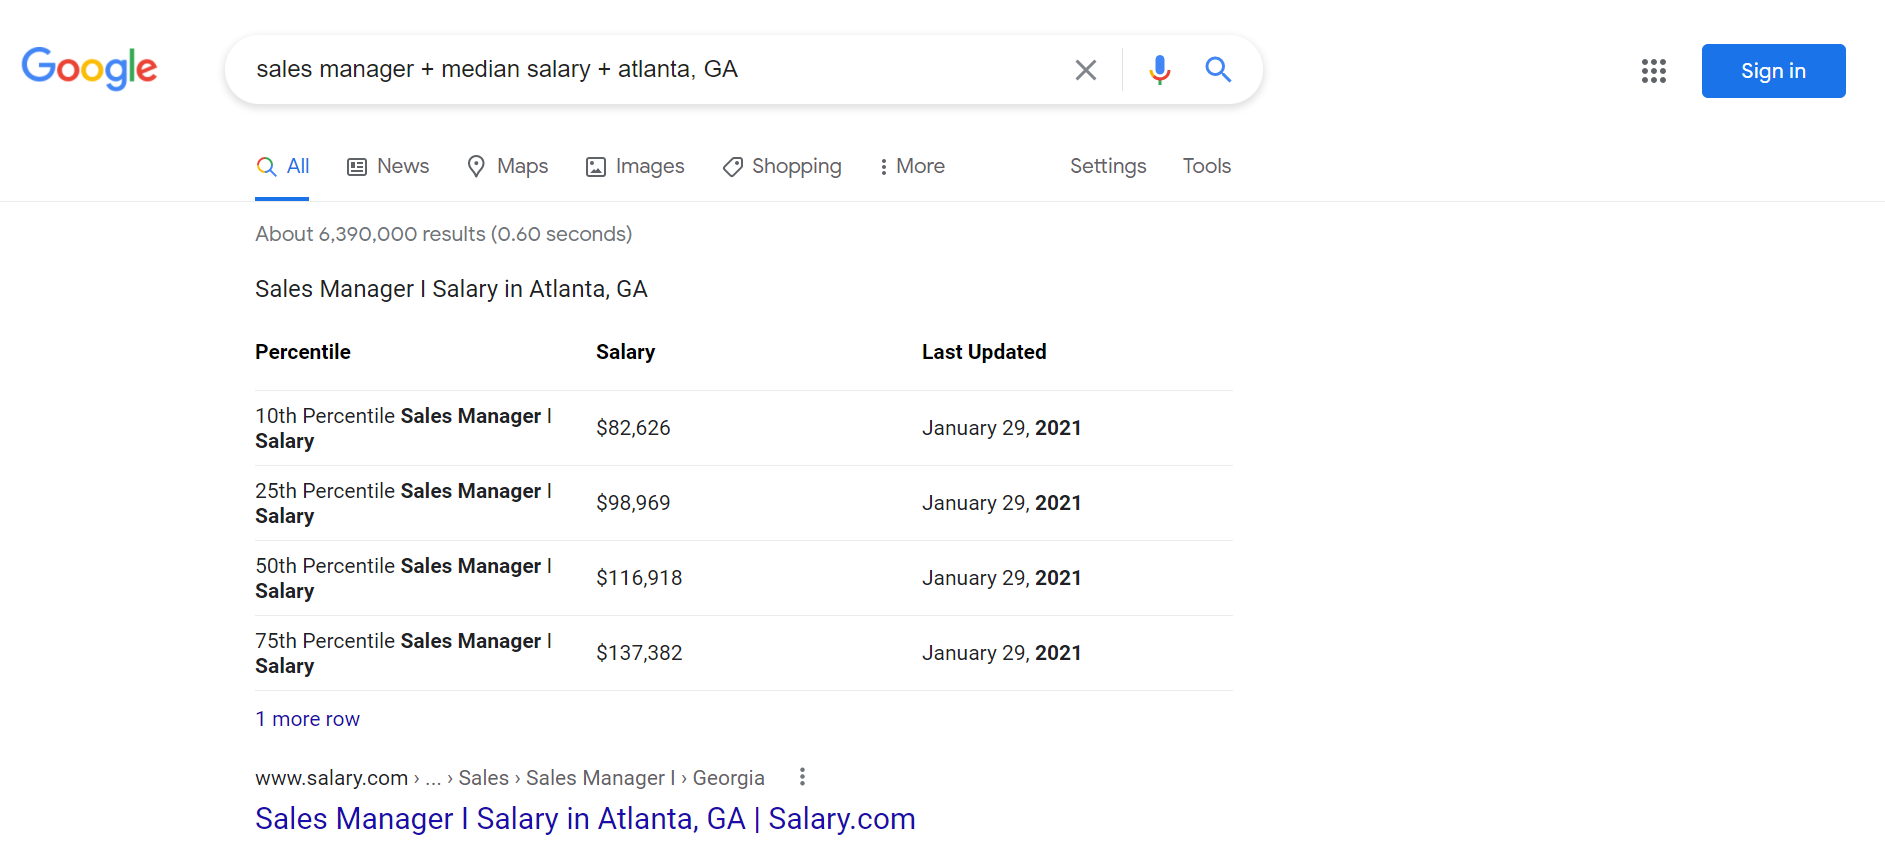 Google Sales Manager Median Salary Example